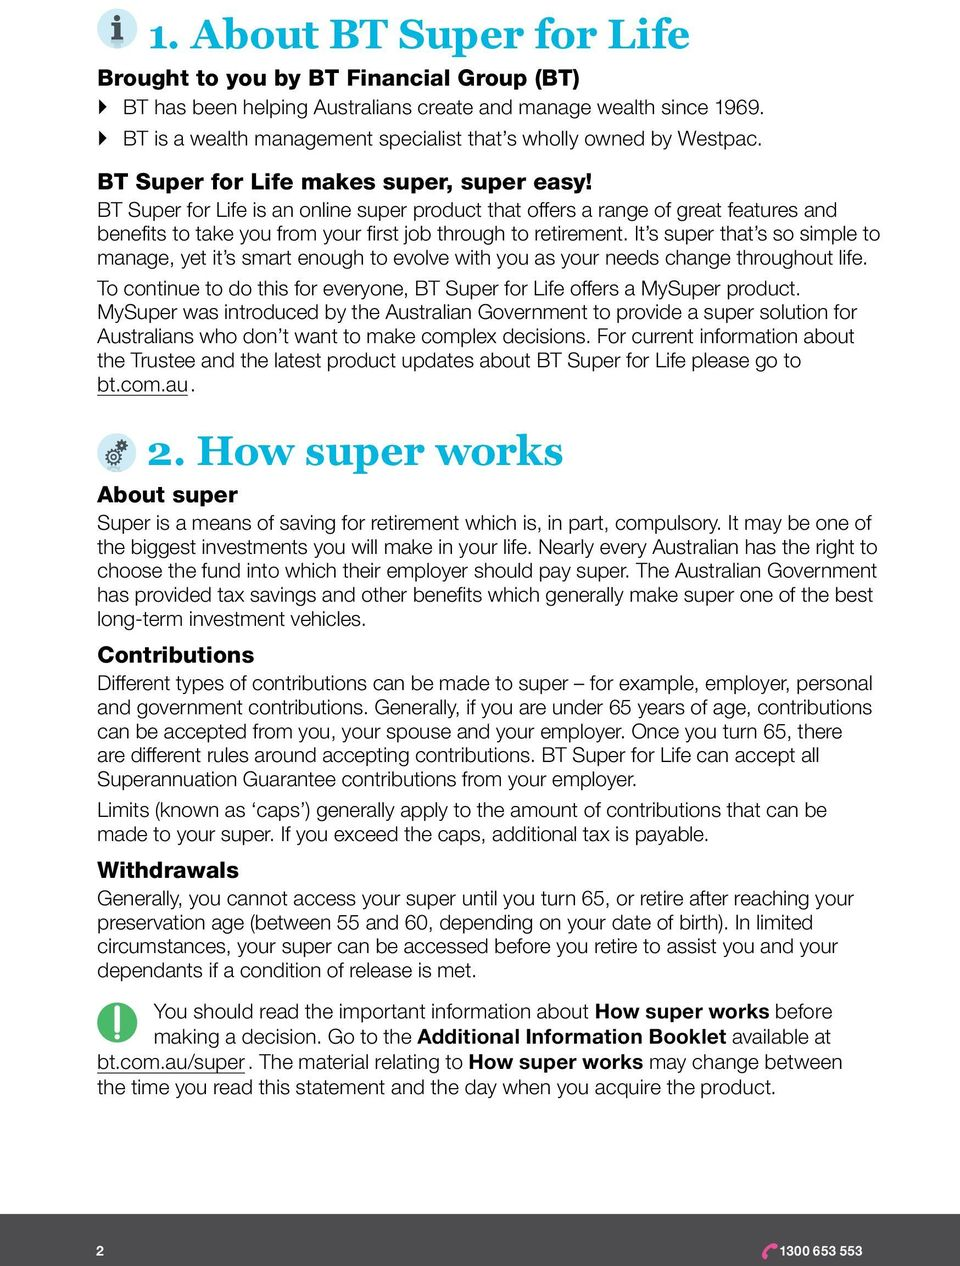 BT Super for Life is an online super product that offers a range of great features and benefits to take you from your first job through to retirement.